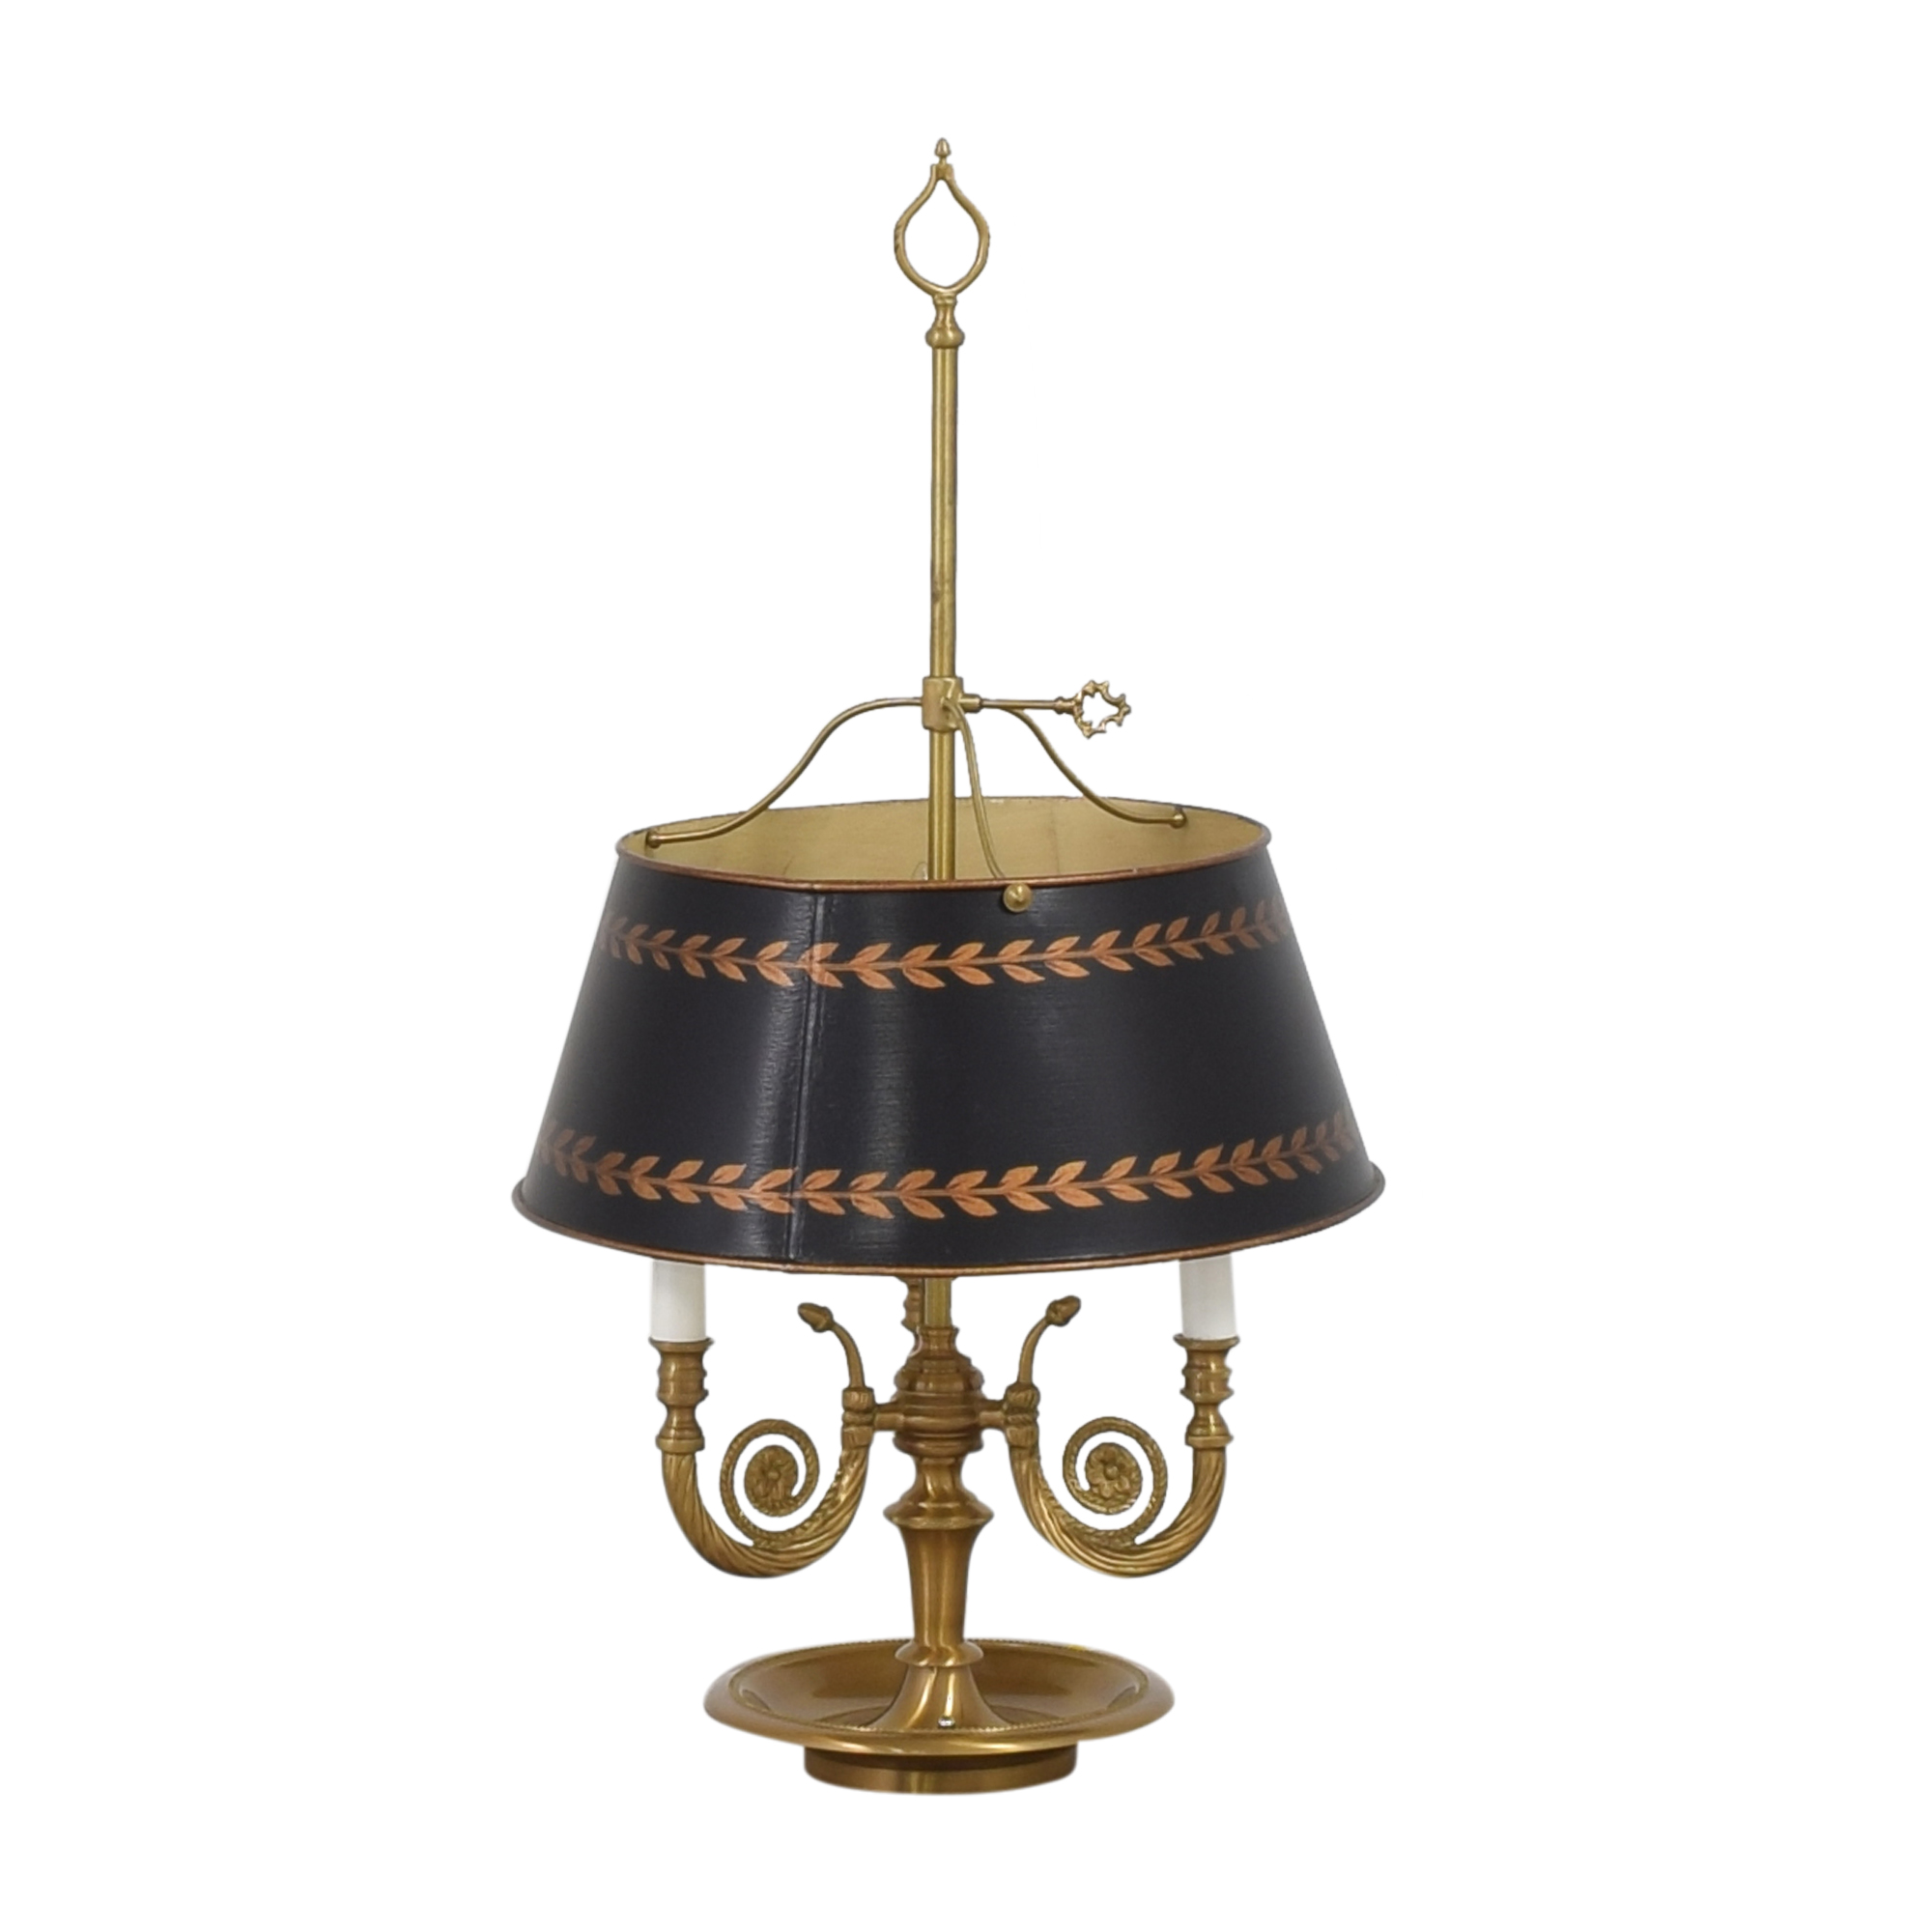 Vintage Triple Table Lamp with Adjustable Shade price